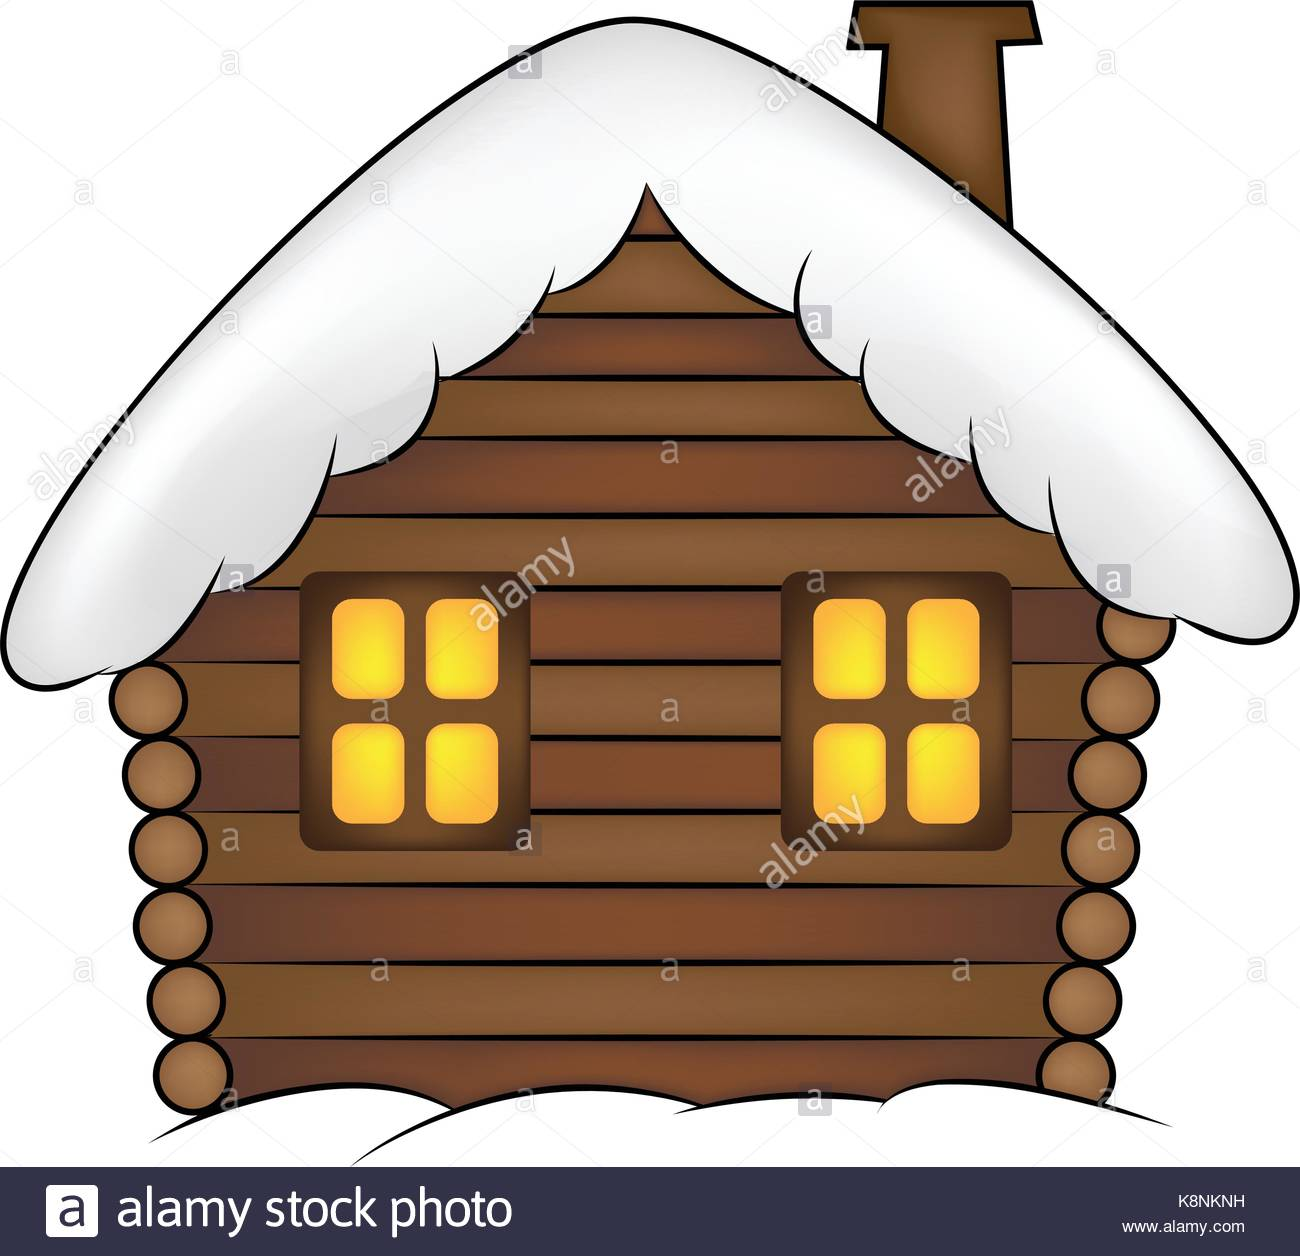 1300x1256 House With Snow Cartoon Illustration. Winter Snowy Christmas Home